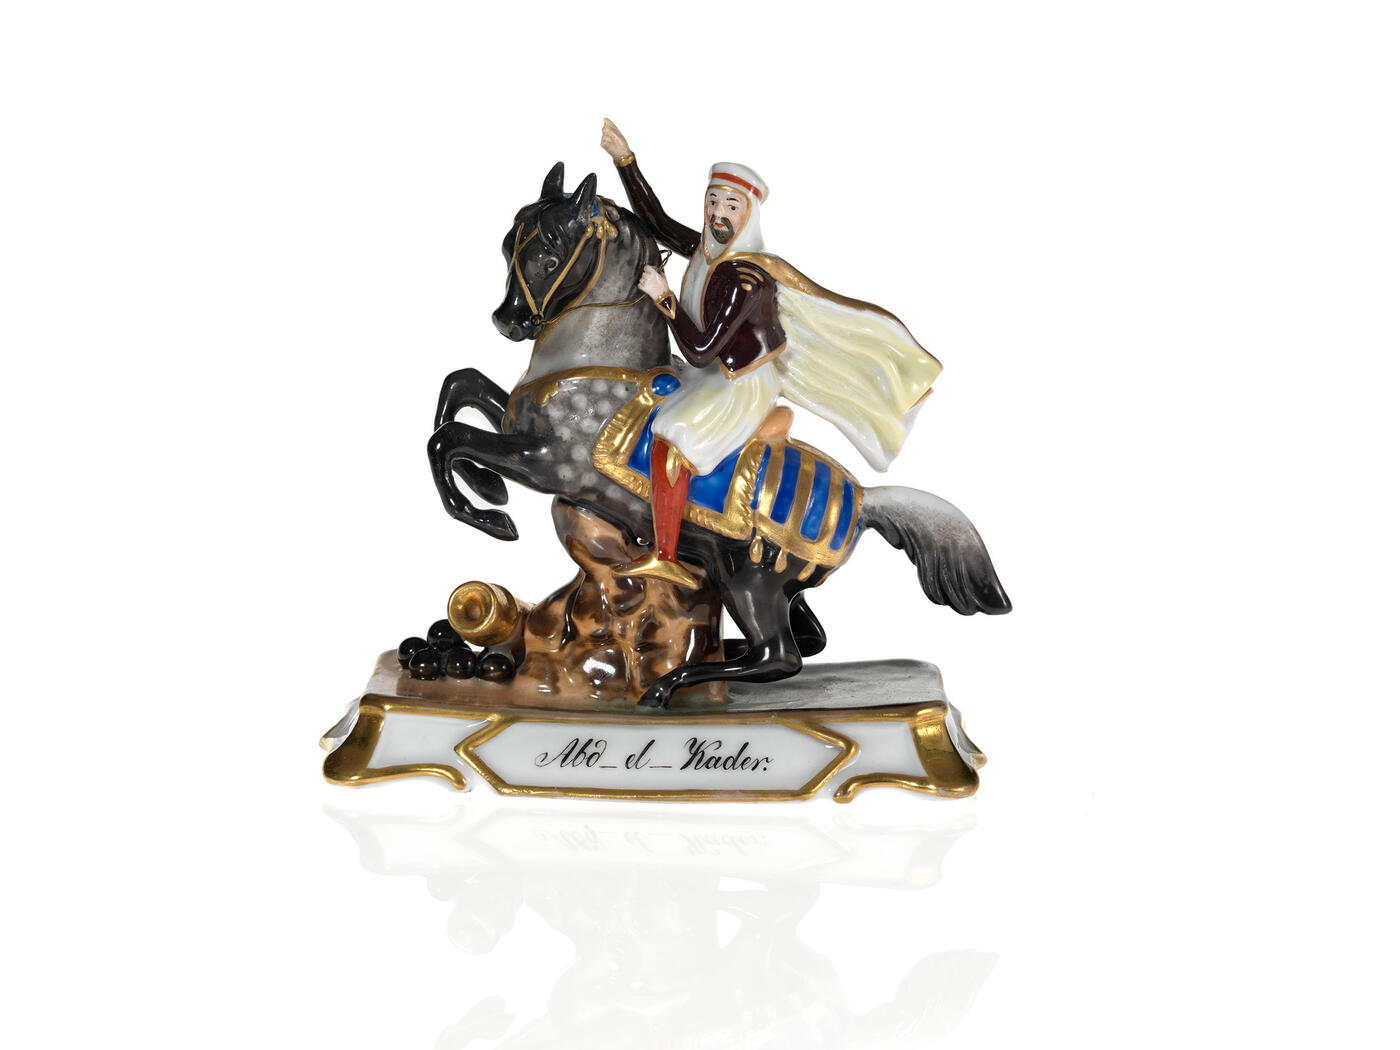 A Porcelain Figurine of Emir Abdelkader on a Horse